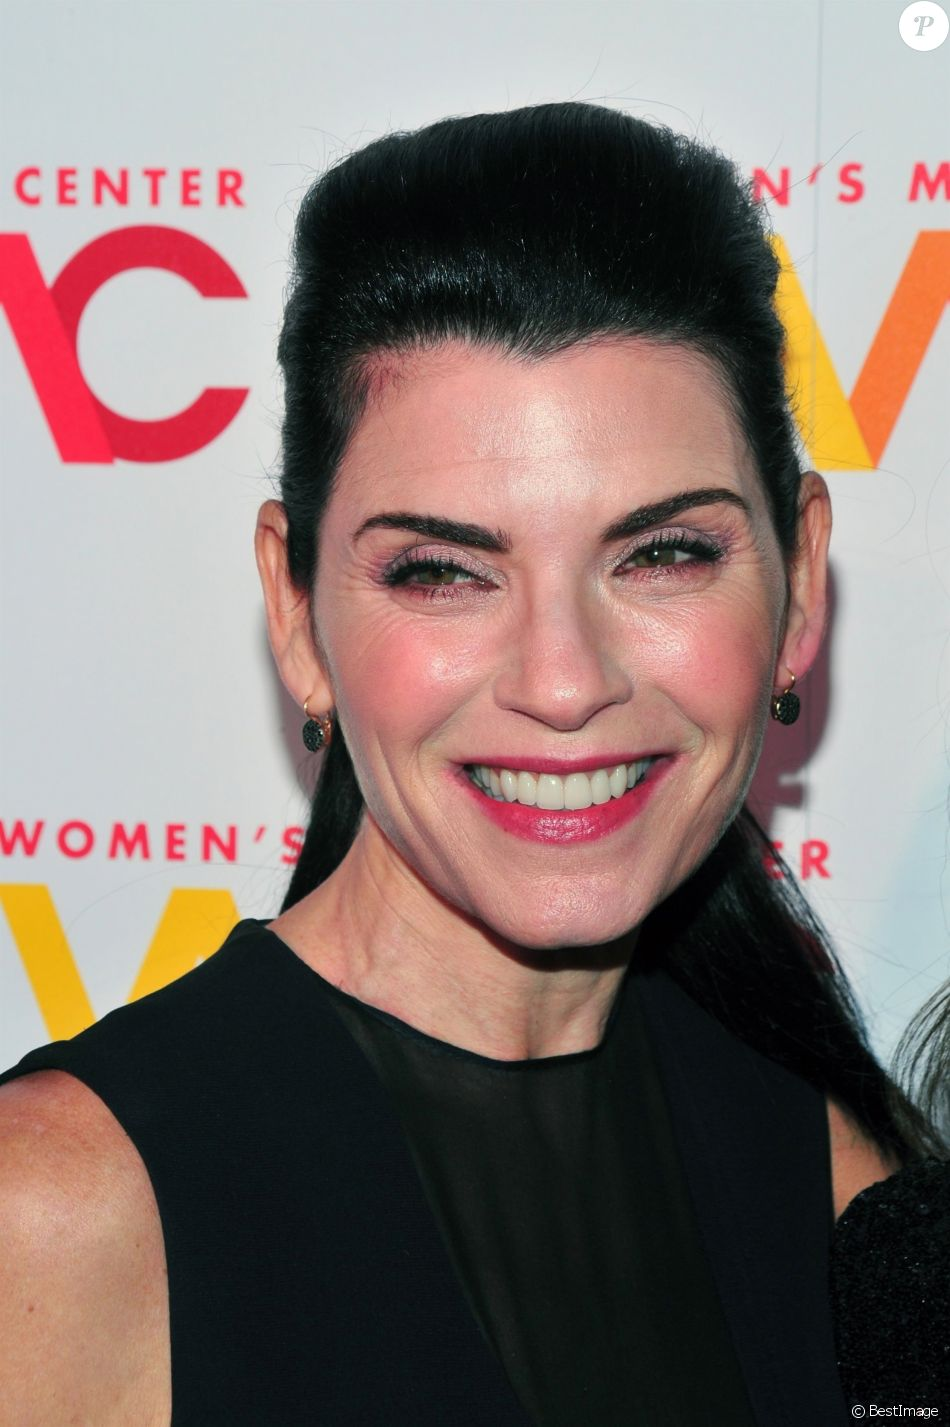 Julianna Margulies à la soirée Women's Media Center 2017 à New York, le 26 octobre 2017